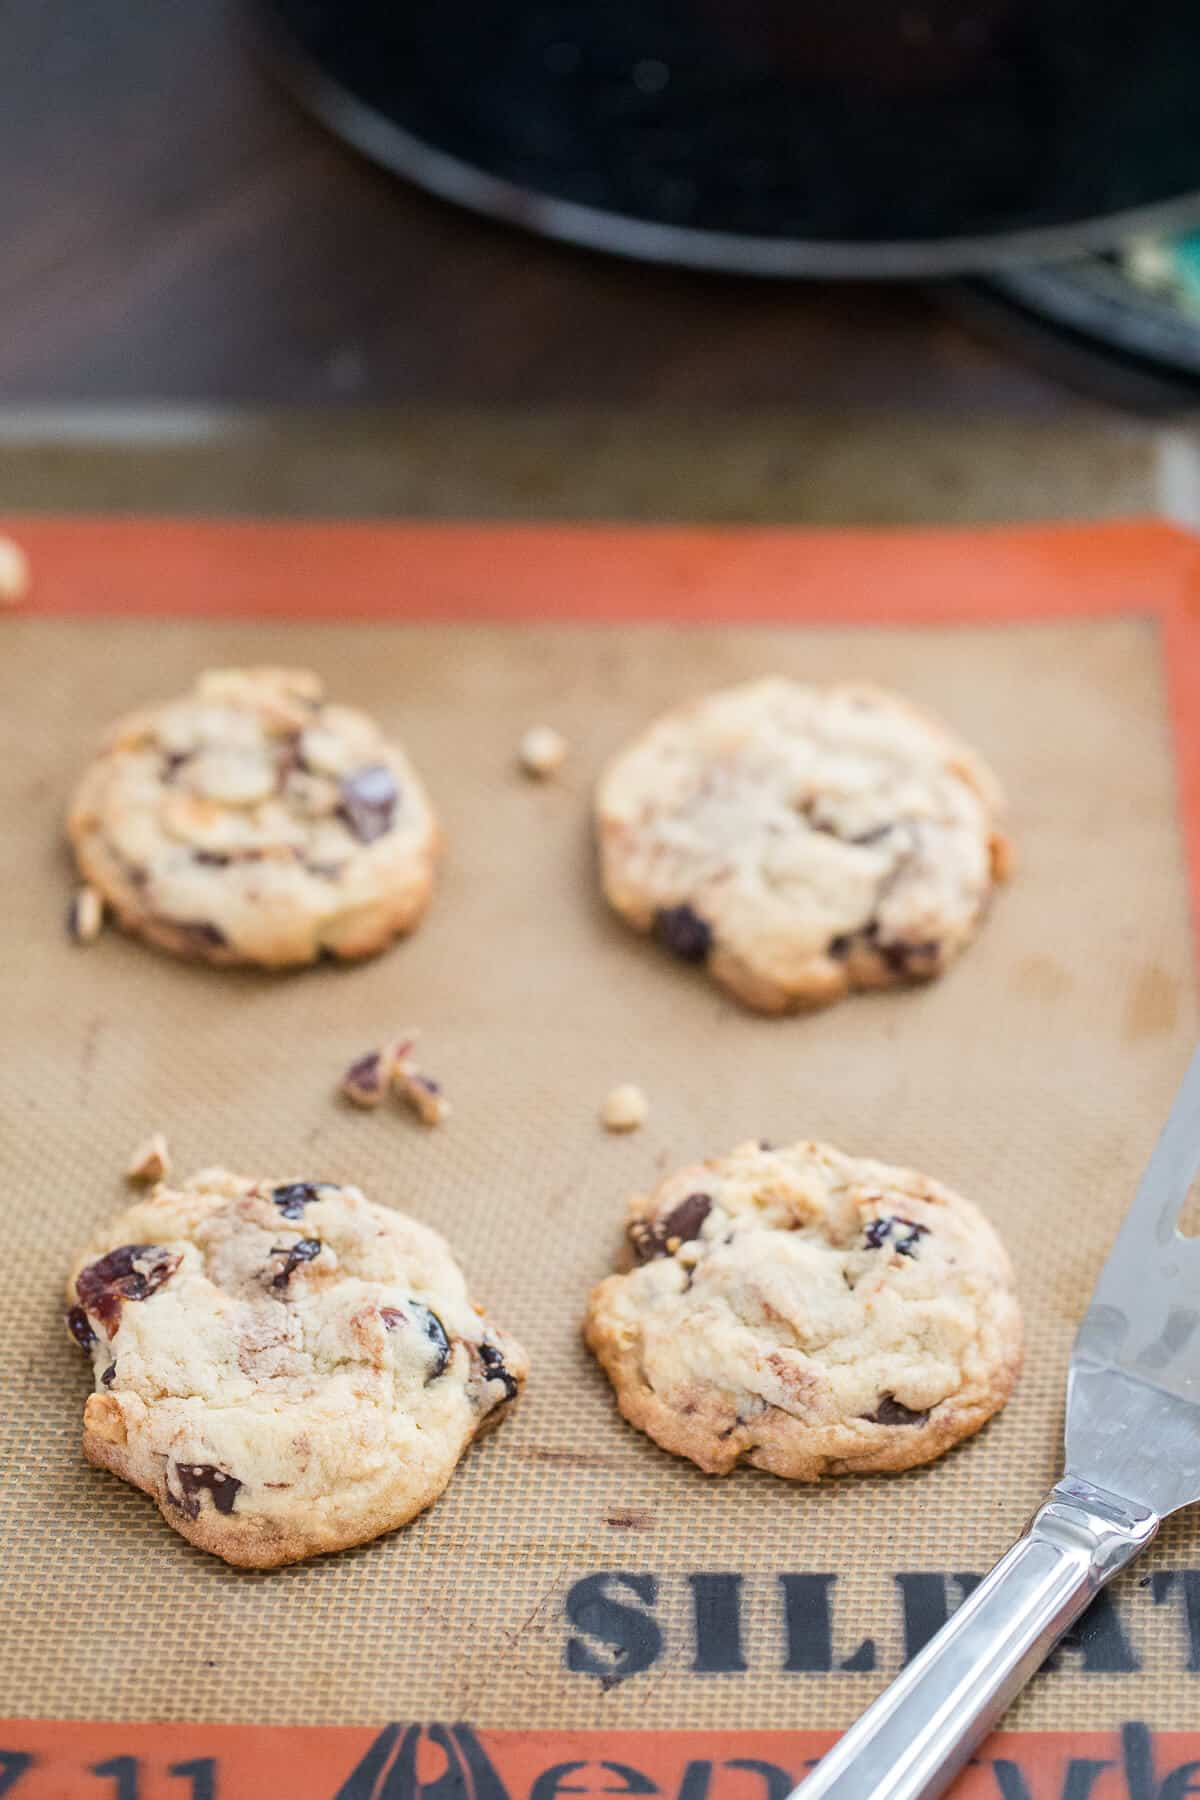 Cherry chip cookies have soft, drunken cherries blended with chocolate chunks and hazelnuts. This a true cookie experience!